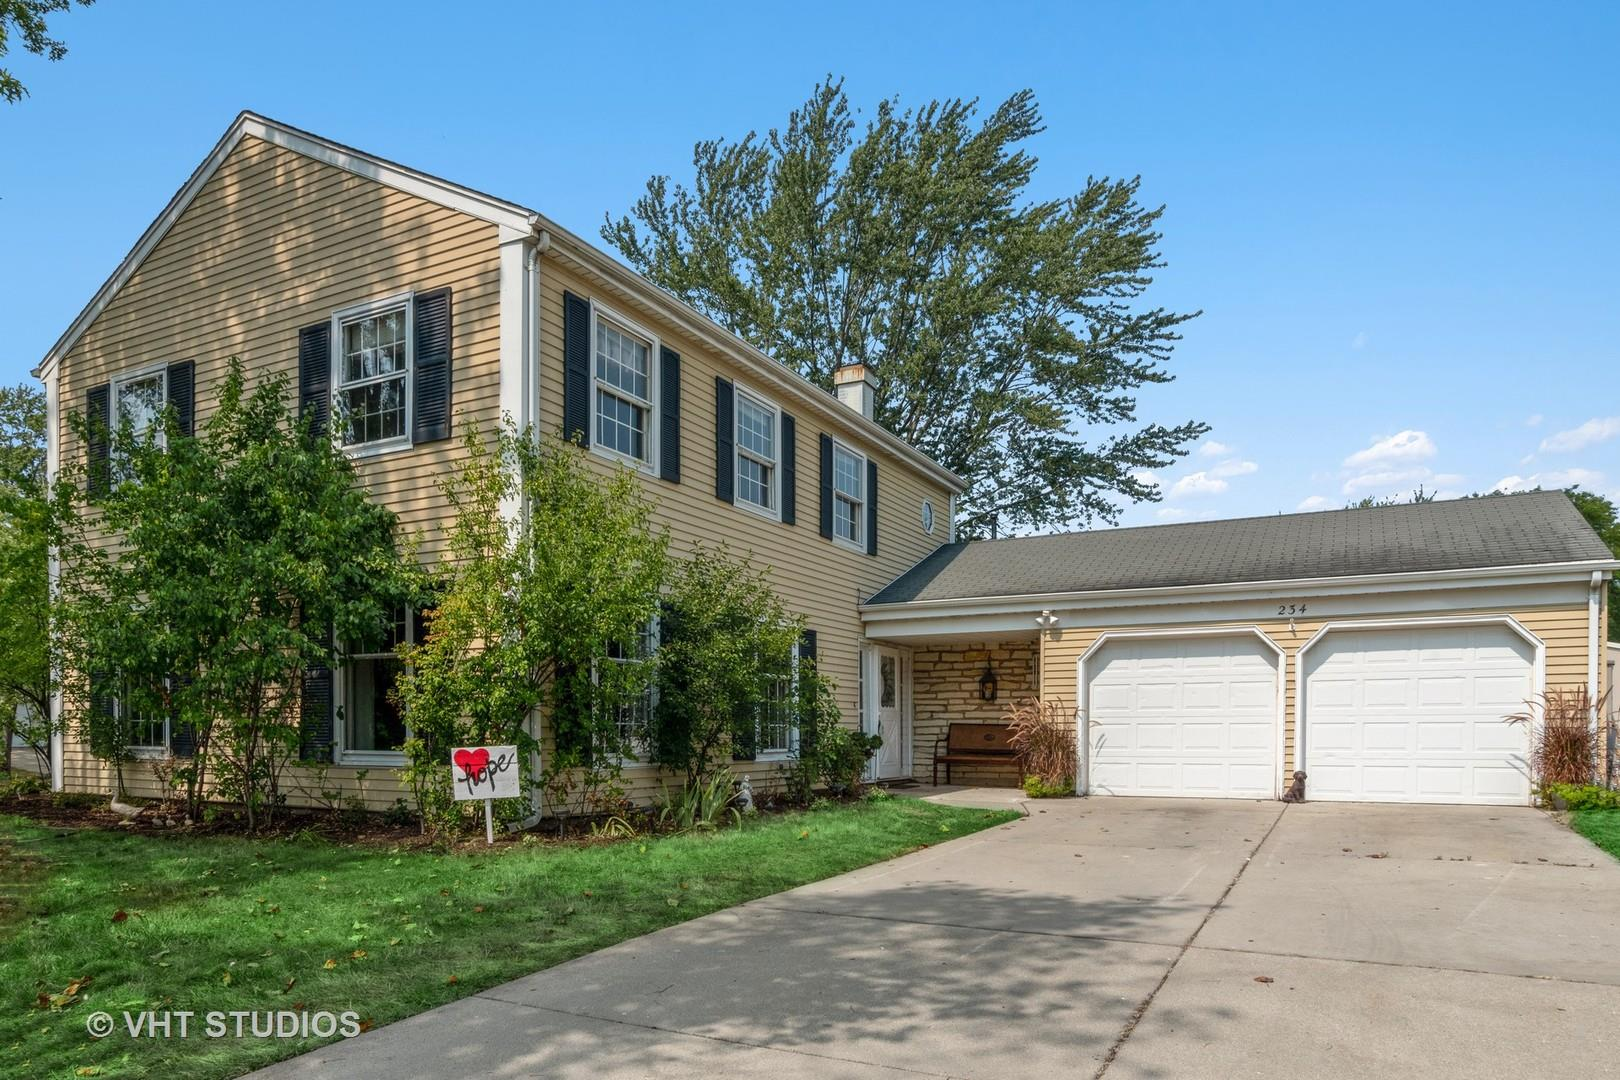 23W234 Edgewood Court, Glen Ellyn, IL 60137 - #: 10830083